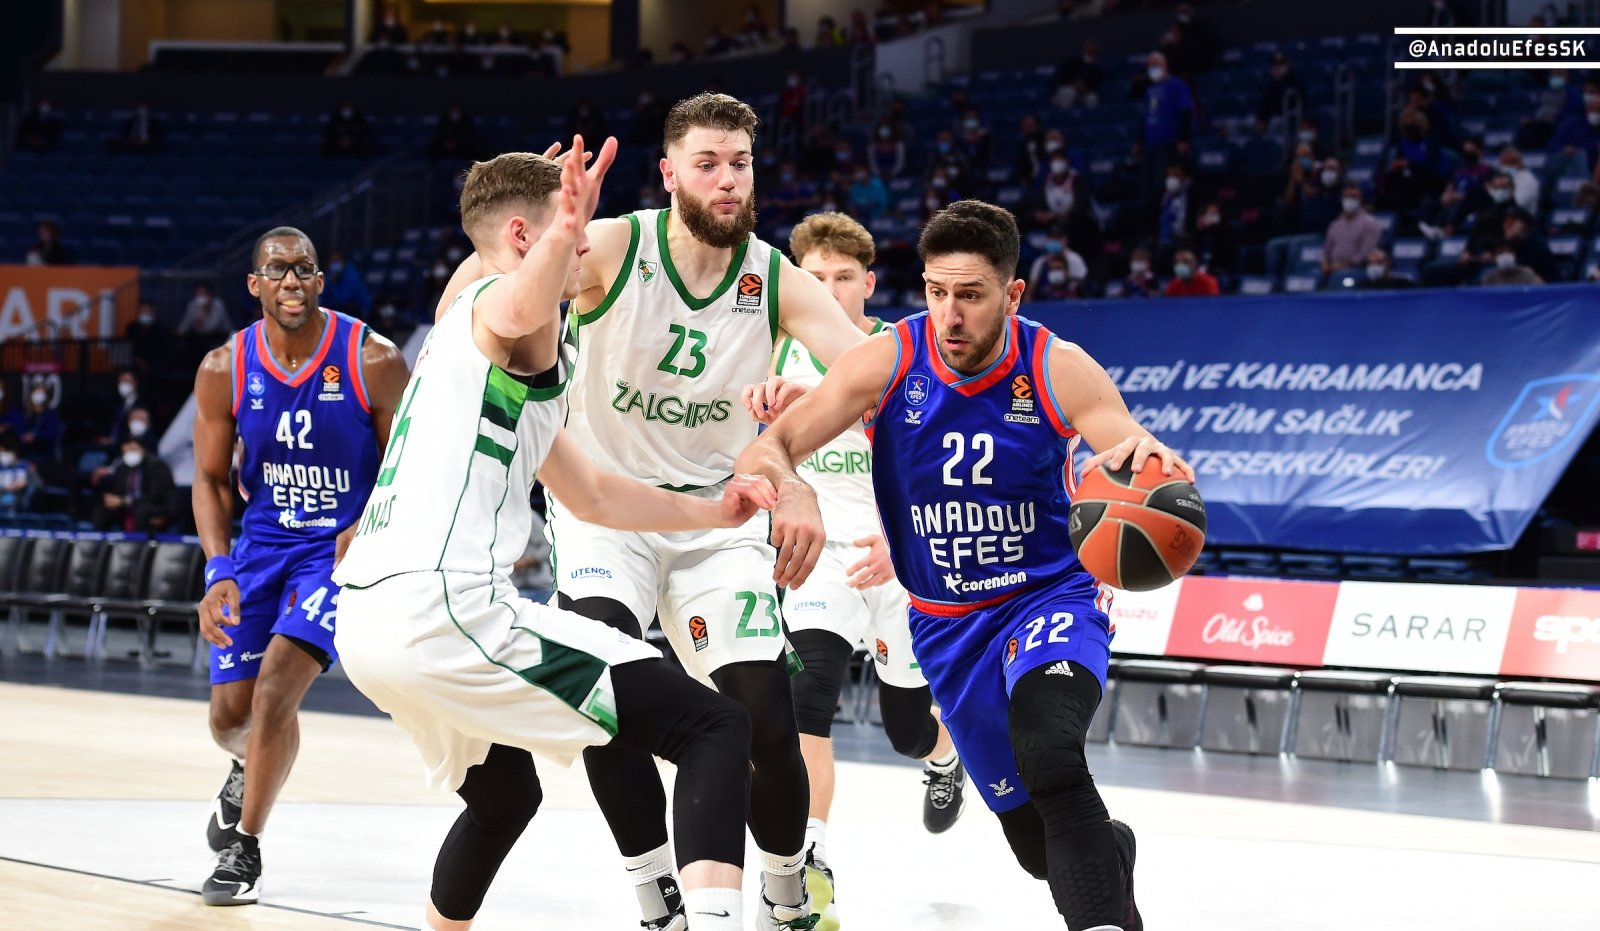 Anadolu Efes guard Vasilije Micic (R) tries to go past Zalgiris center Martinas Geben (C) in a EuroLeague basketball match in Istanbul, Turkey, March 12, 2021. (DHA Photo)